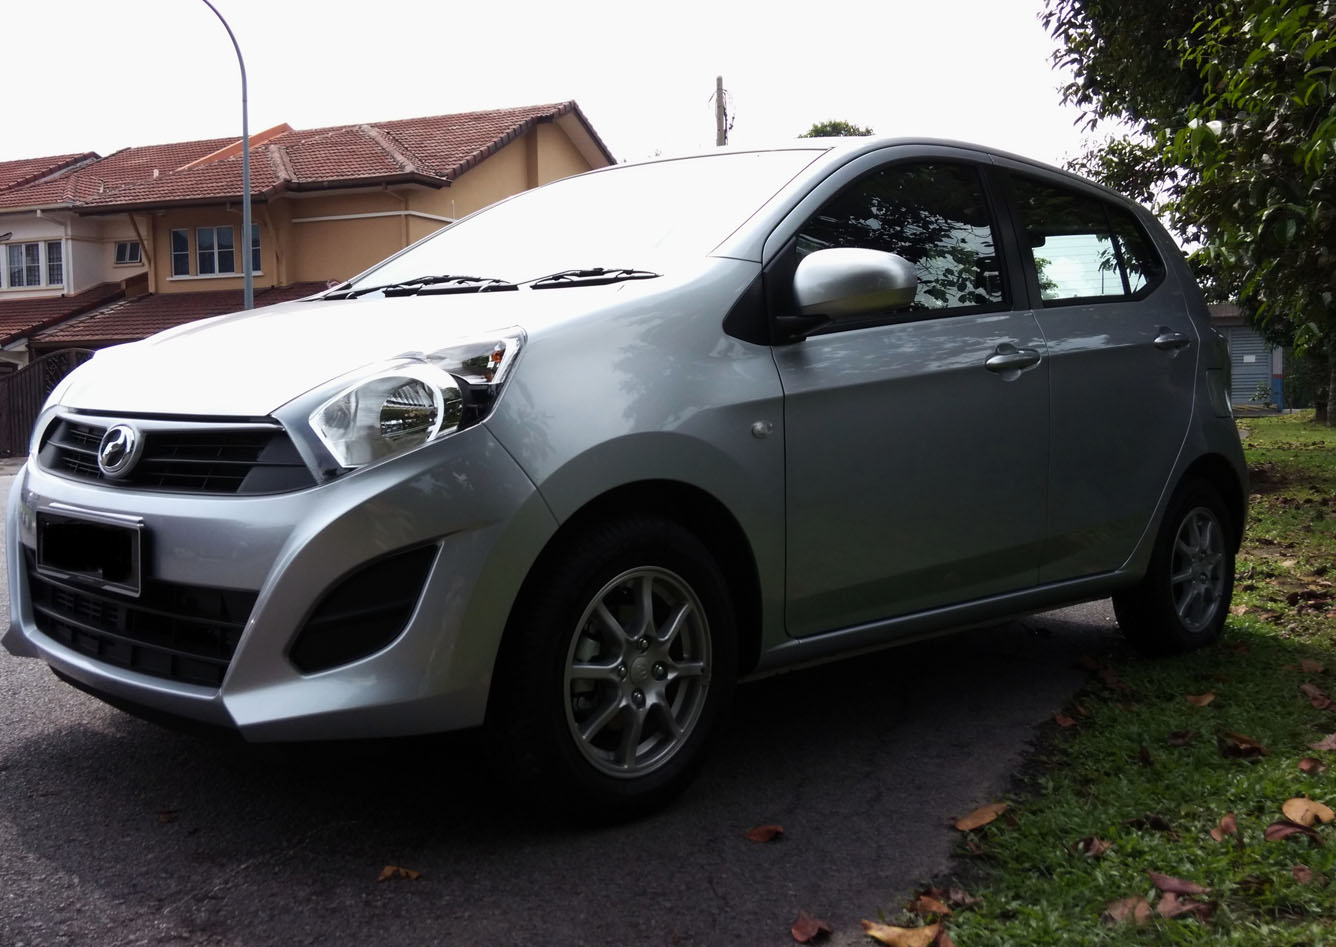 hight resolution of the axia may look bare basic compared to its rivals but as an affordable and unpretentious car for the masses that serves the majority s motoring needs